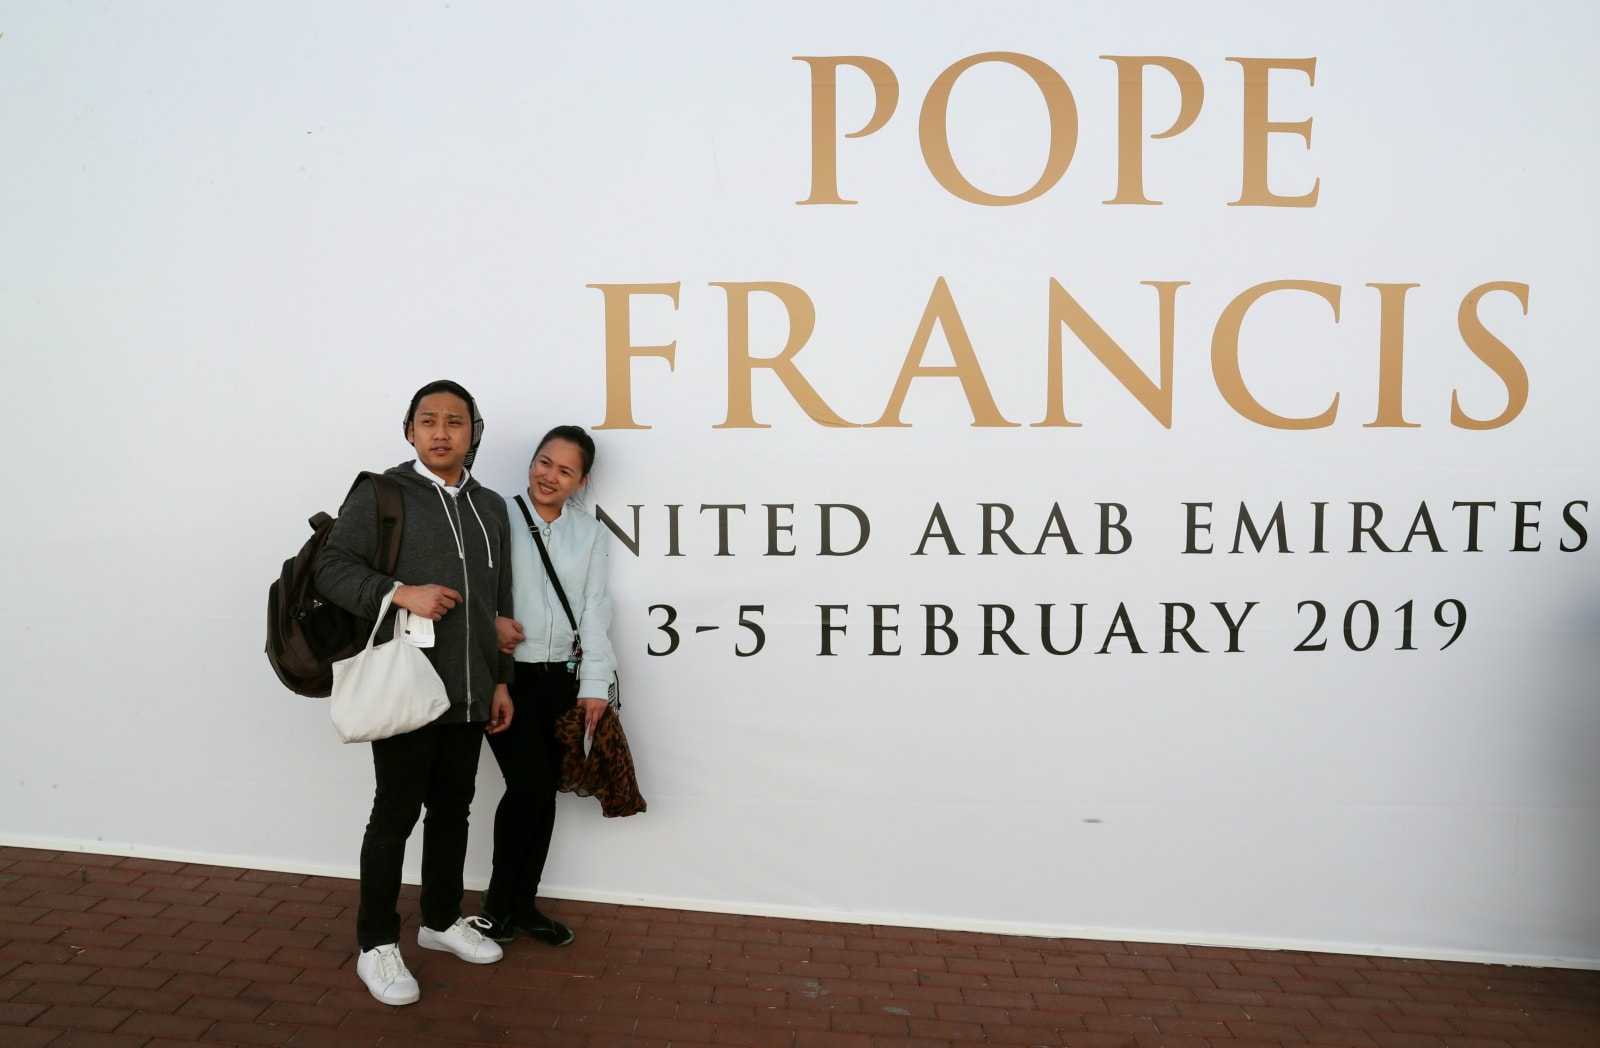 People pose for a photo in front of a sign welcoming Pope Francis in Abu Dhabi, United Arab Emirates, February 5, 2019. REUTERS/Tony Gentile